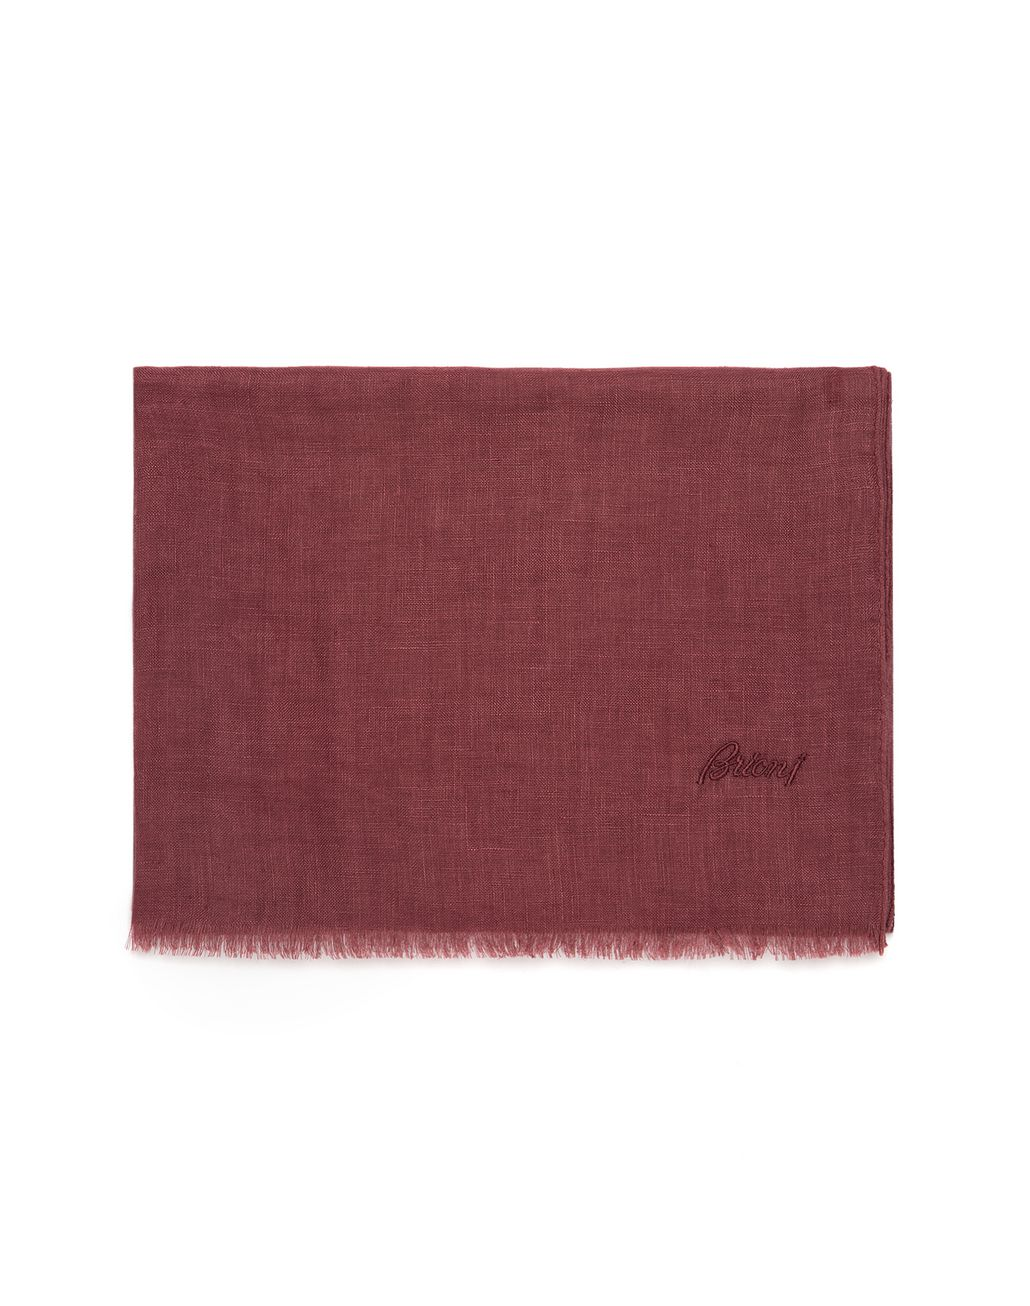 BRIONI Bordeaux Linen Scarf Foulards & Scarves [*** pickupInStoreShippingNotGuaranteed_info ***] f